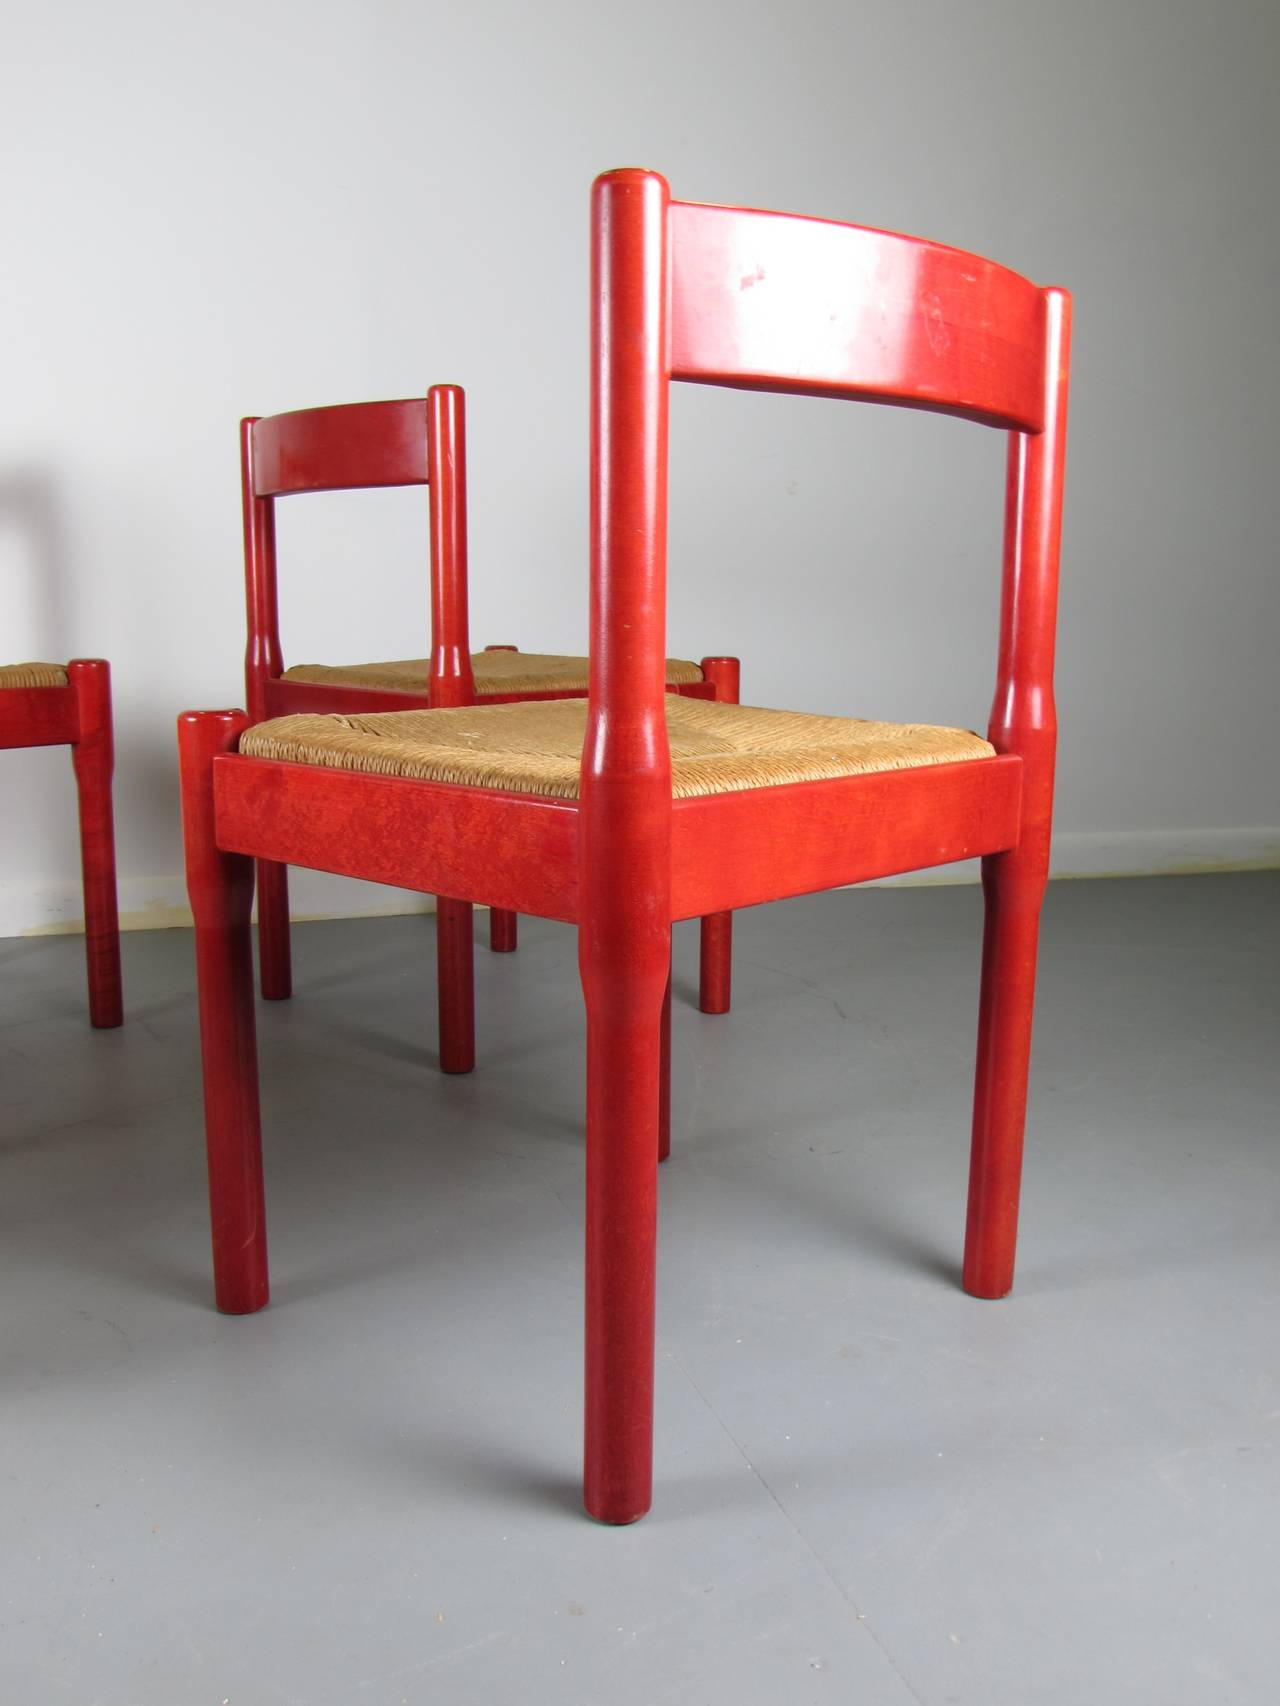 Joyful Set of Rare Red Carimate Dining Chairs by Vico Magistretti